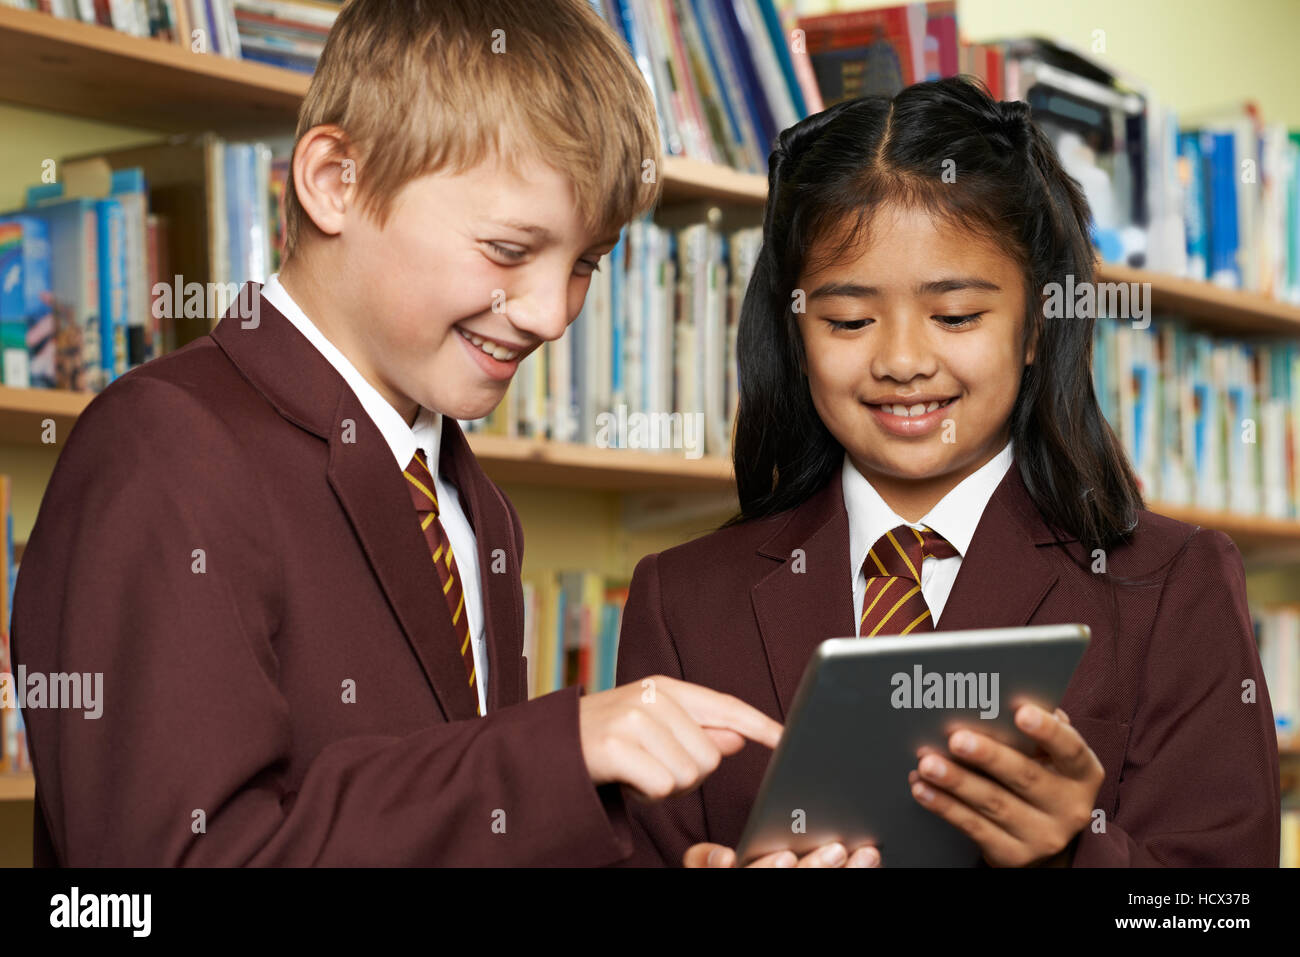 Pupils Wearing School Uniform Using Digital Tablet In Library - Stock Image